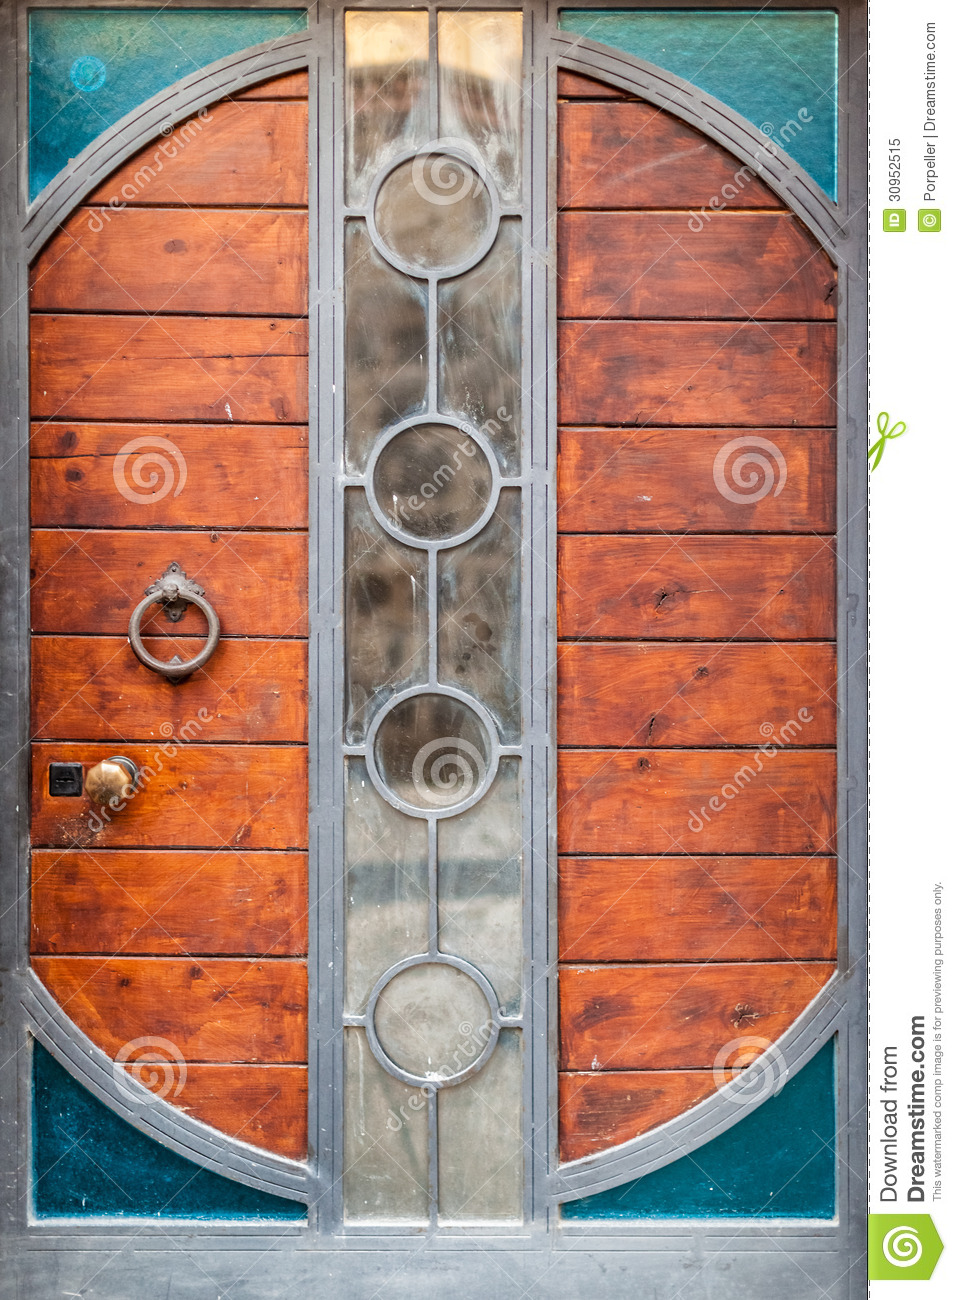 Steampunk Door Royalty Free Stock Photo Image 30952515